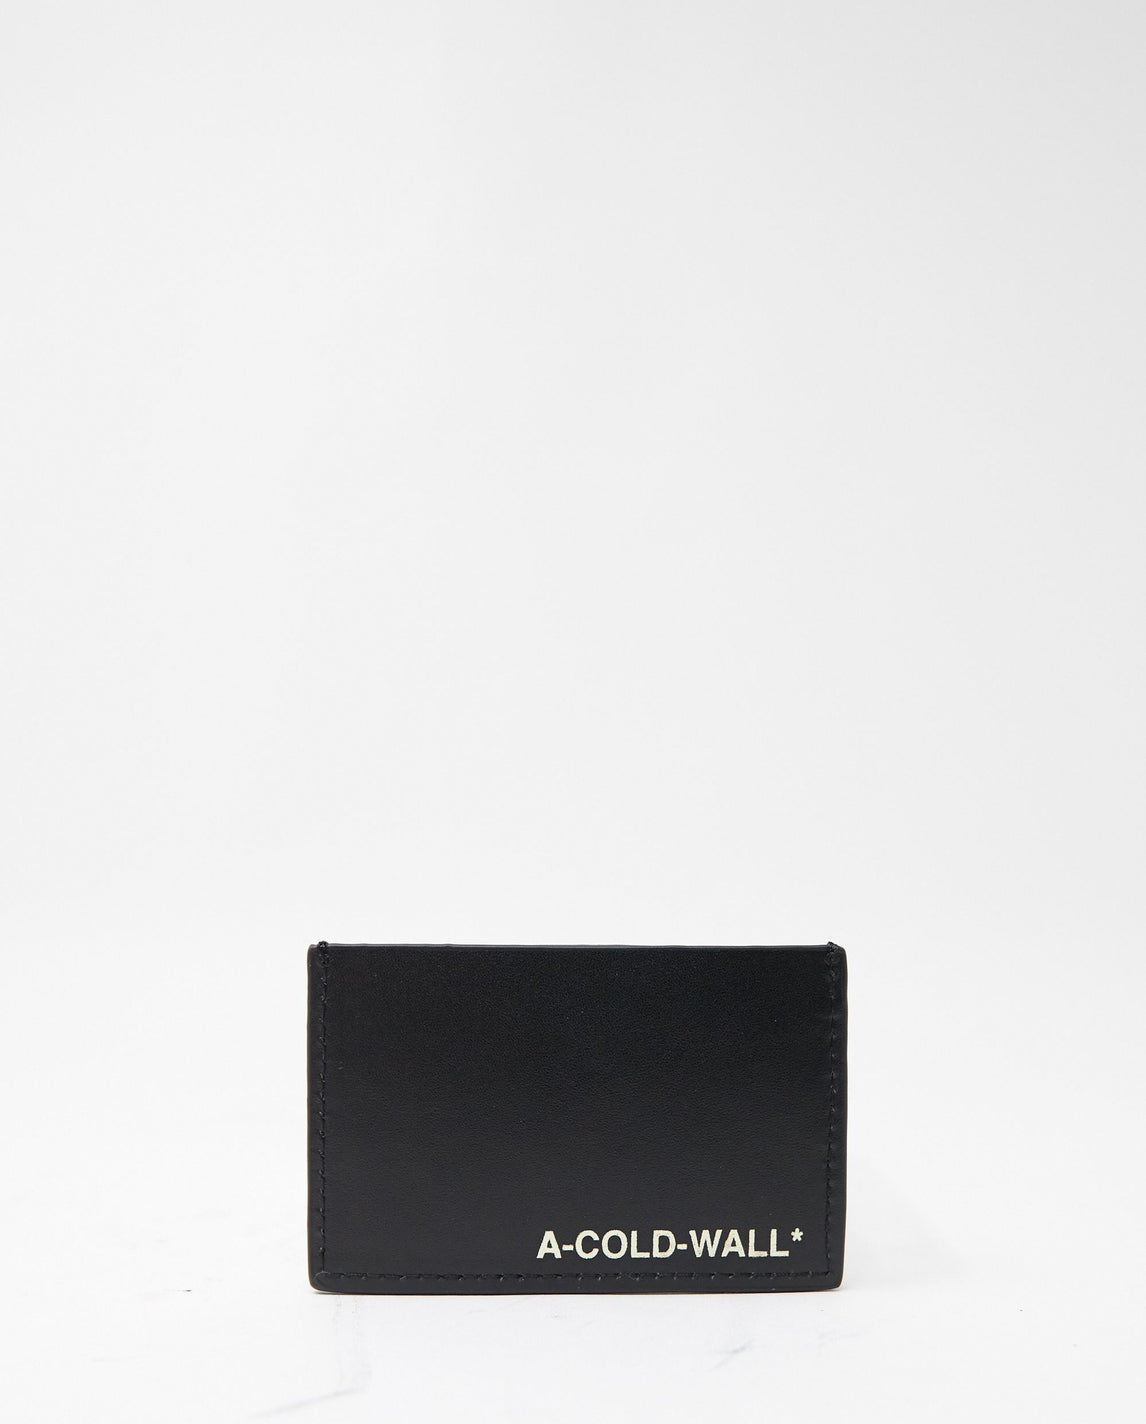 Leather Card Holder - Black UNISEX A COLD WALL